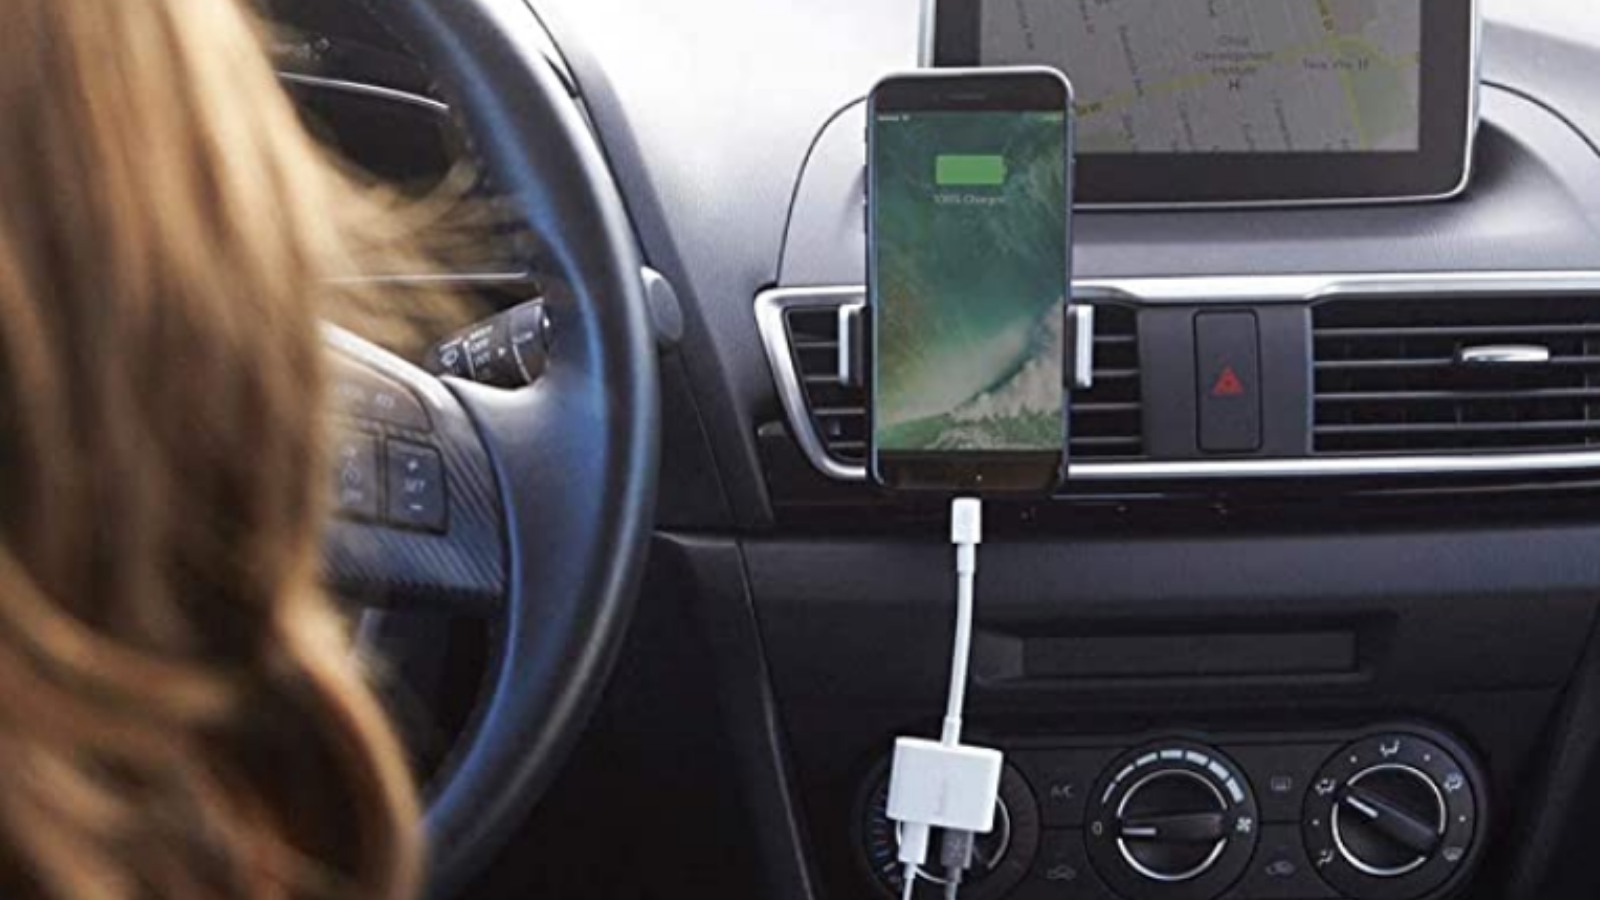 person charging their phone and listening to music in the car with the Belkin Rockstar Adapter